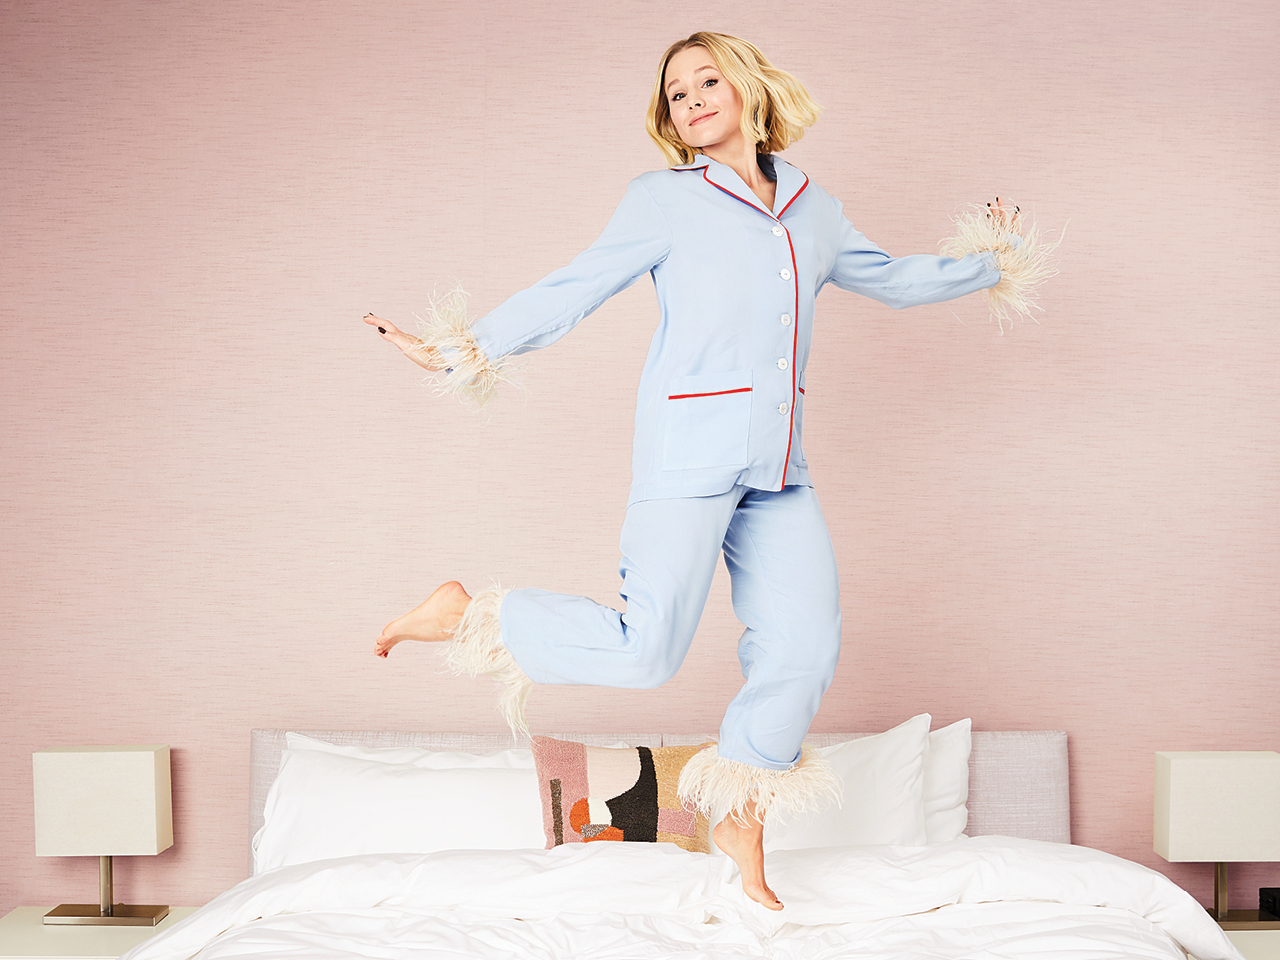 Kristen Bell jumping on a bed wearing pajamas with feathery cuffs